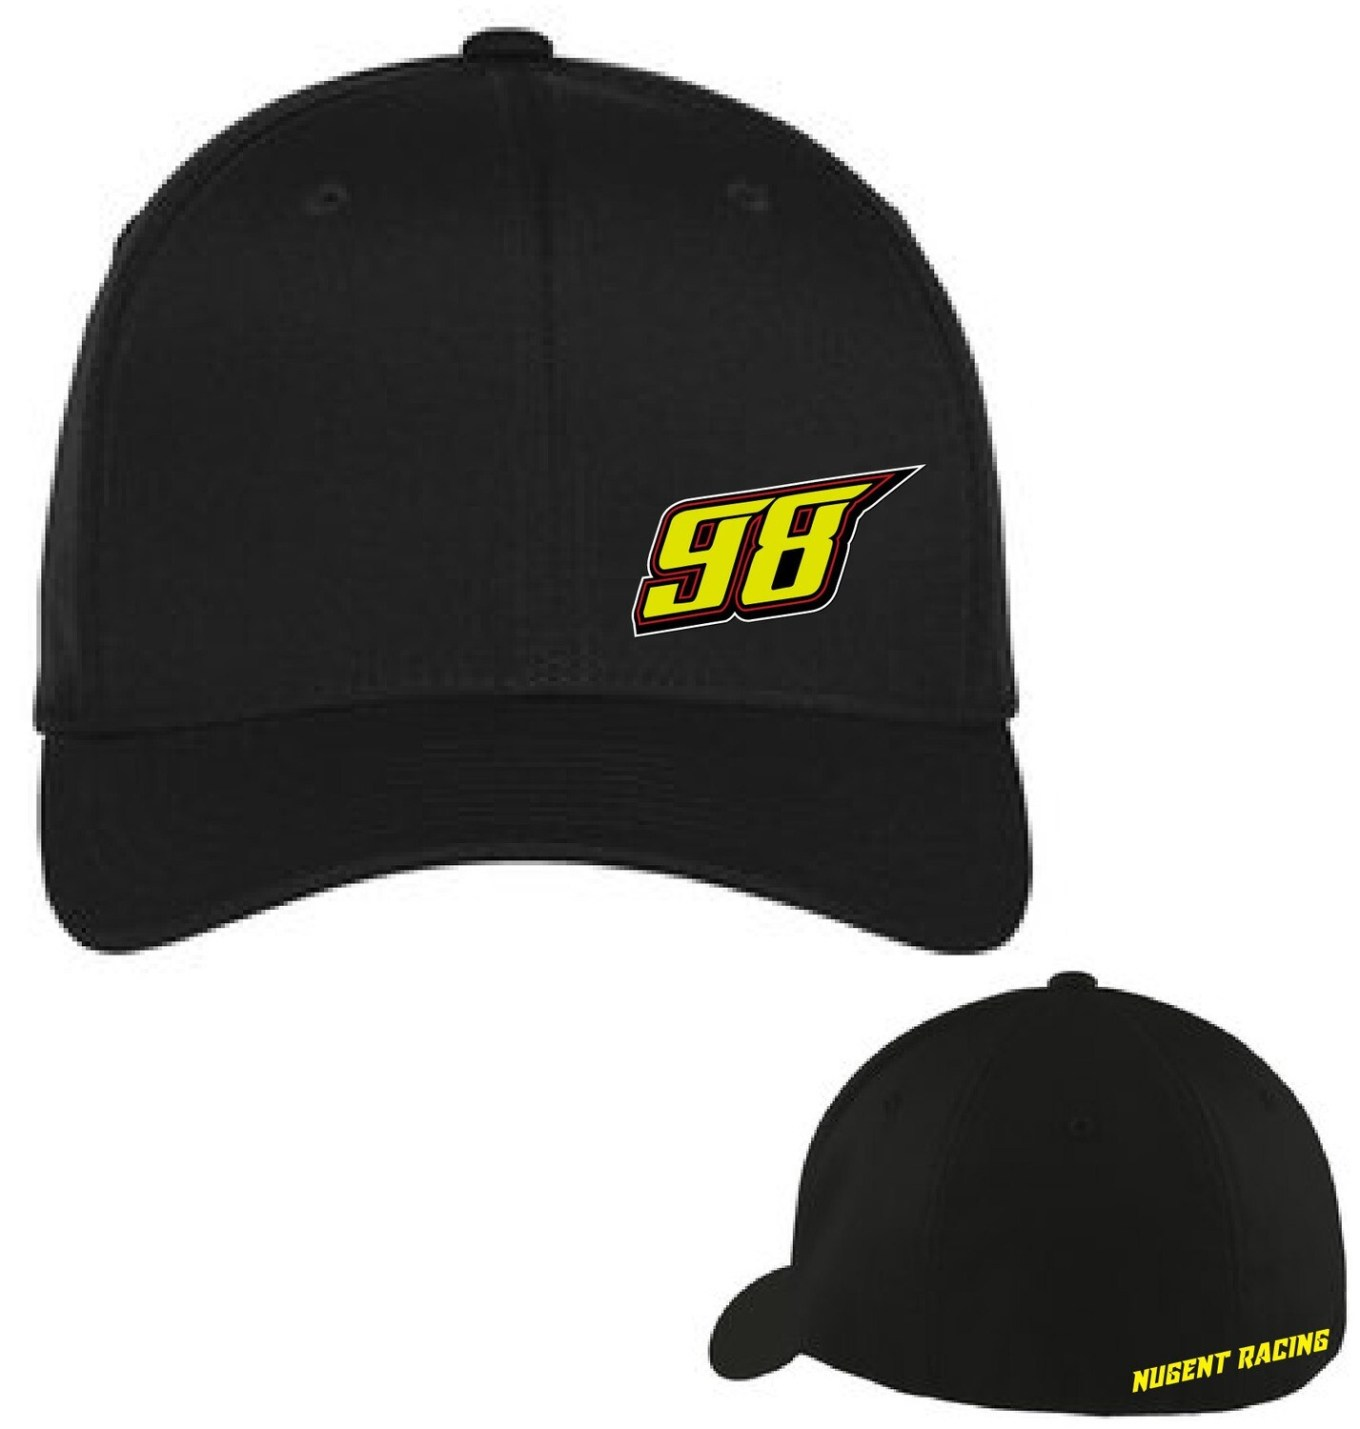 2021 Nugent Racing Fitted Hat